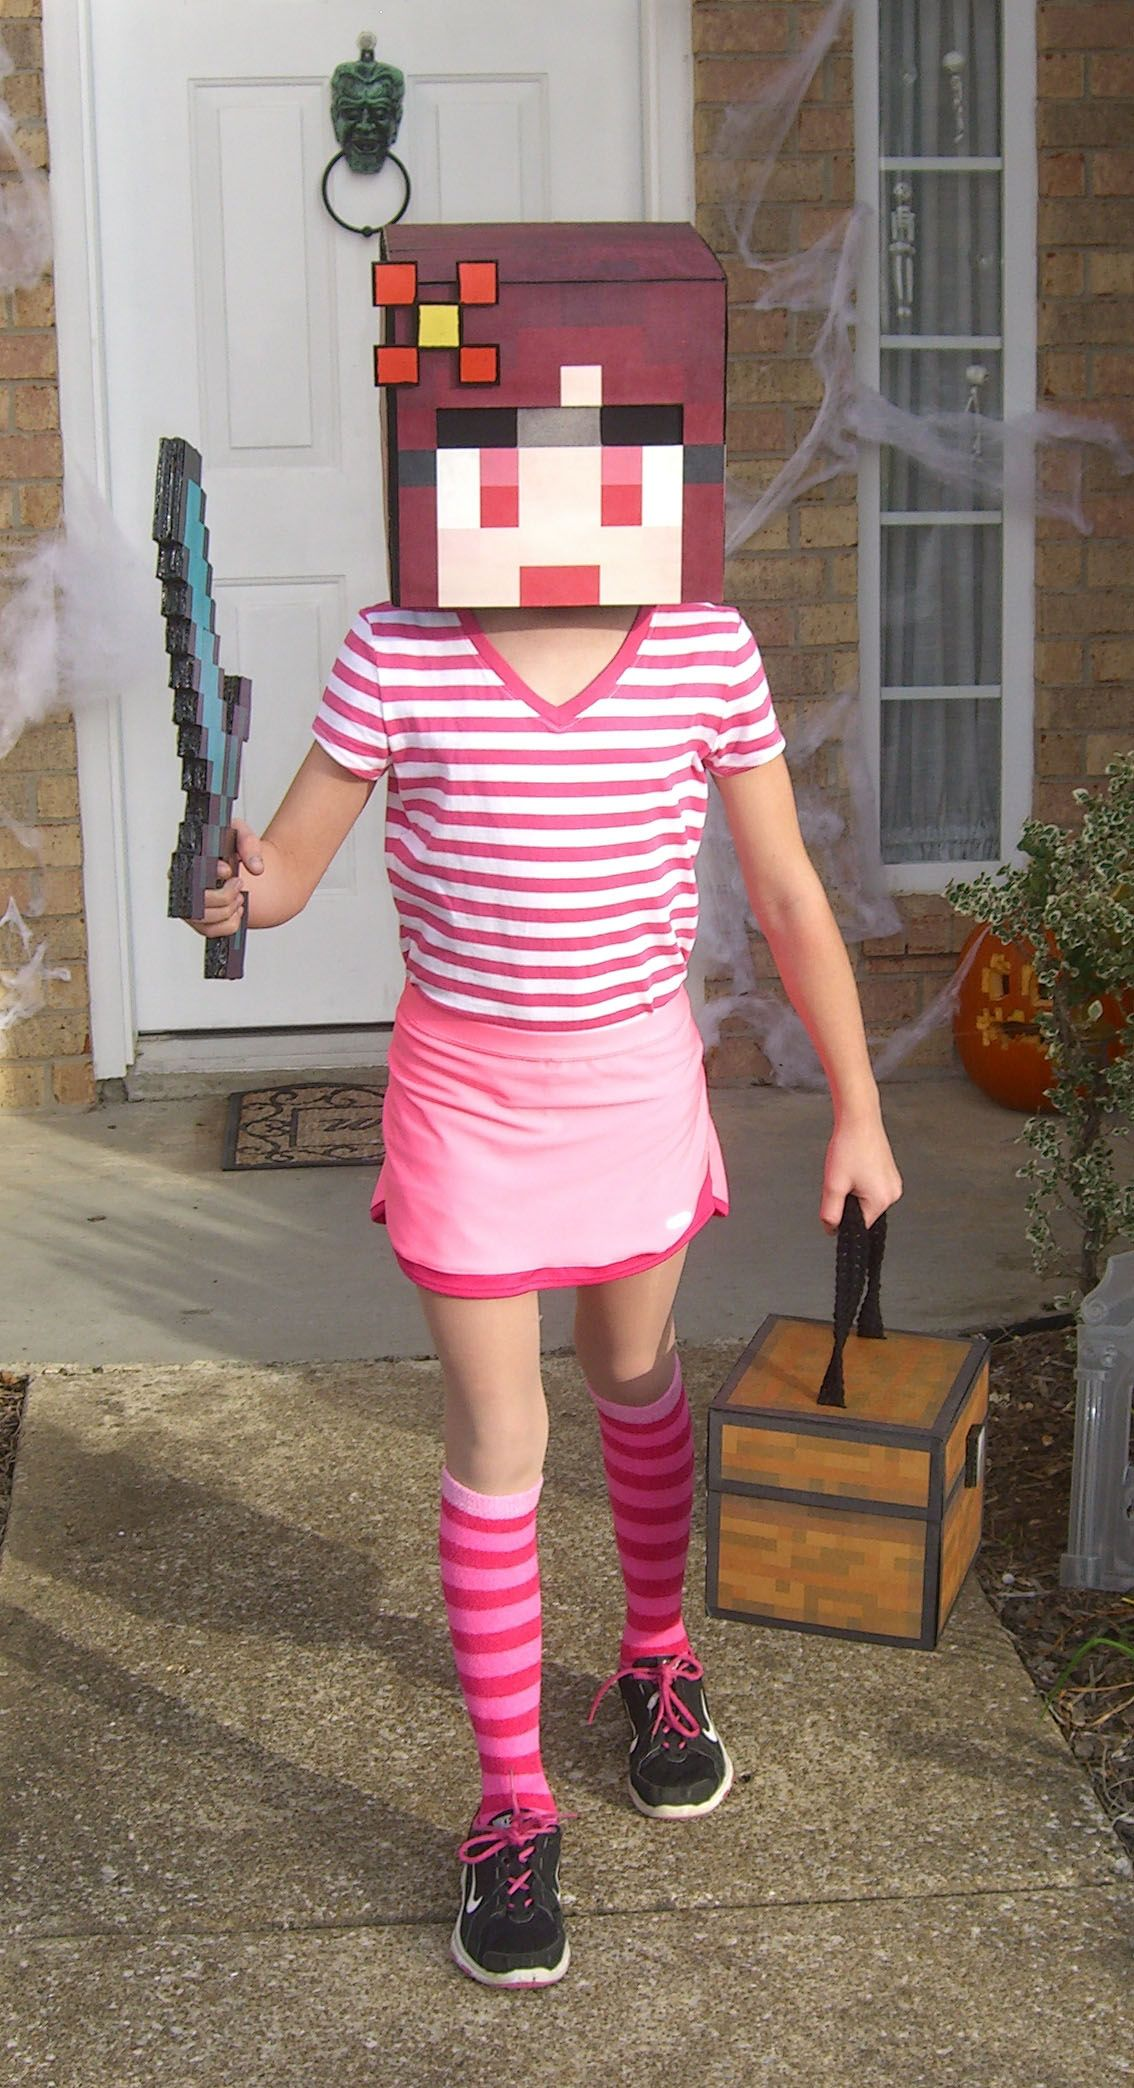 This just gave me an idea to cosplay my own minecraft skin XD ...